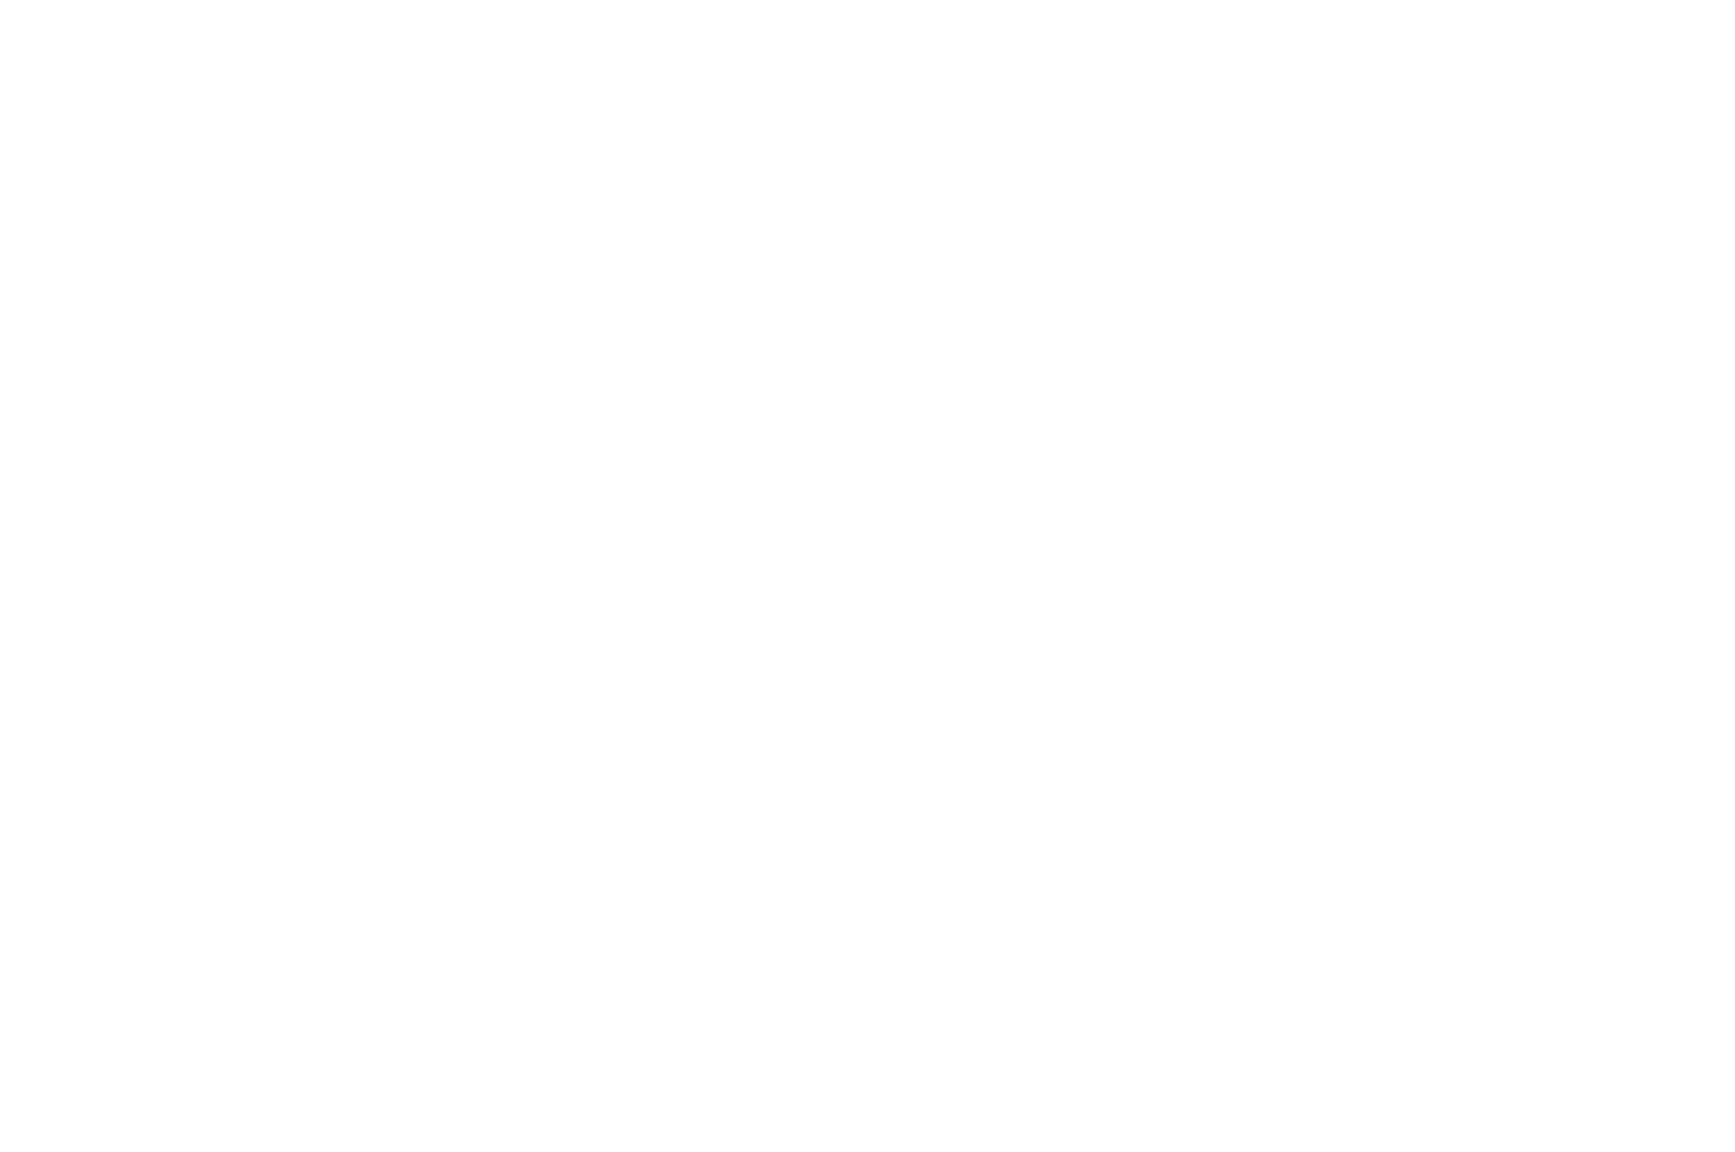 OFFICIAL SELECTION - Central Alberta Film Festival - 2018 (1).png